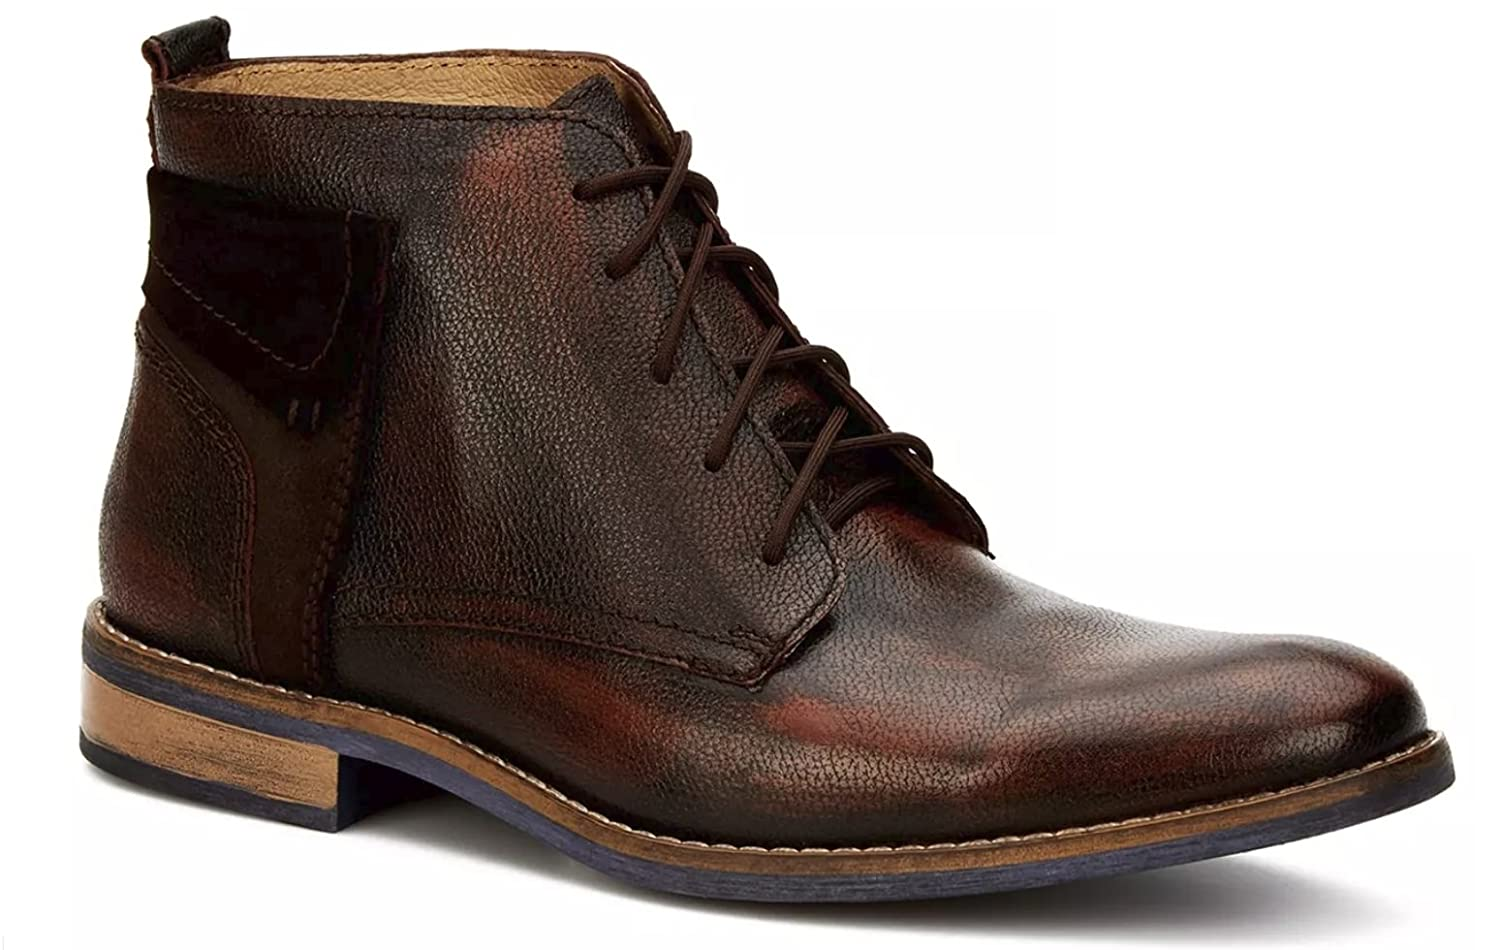 6601646dff Ferrrato Men's Chukka Brown Distressed Effect Genuine Leather Ankle ...